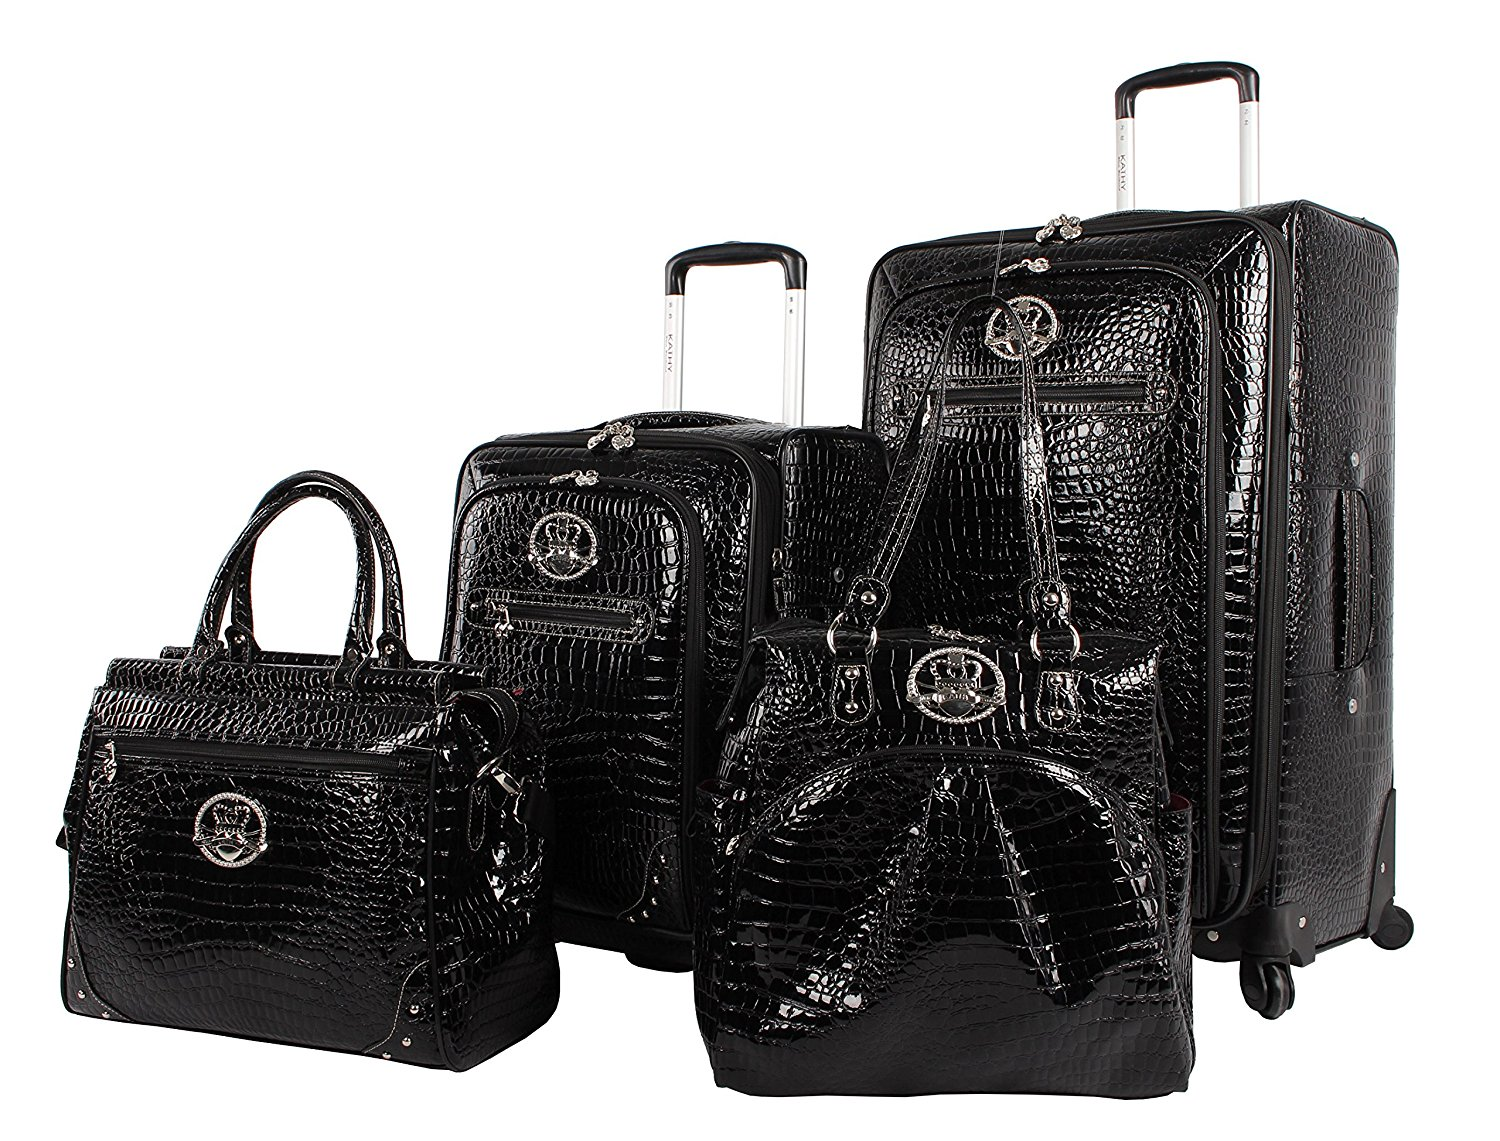 2088adaeca13 Get Quotations · Kathy Van Zeeland Croco PVC Luggage Set 4 Piece Expandable  Suitcase with Spinner Wheels